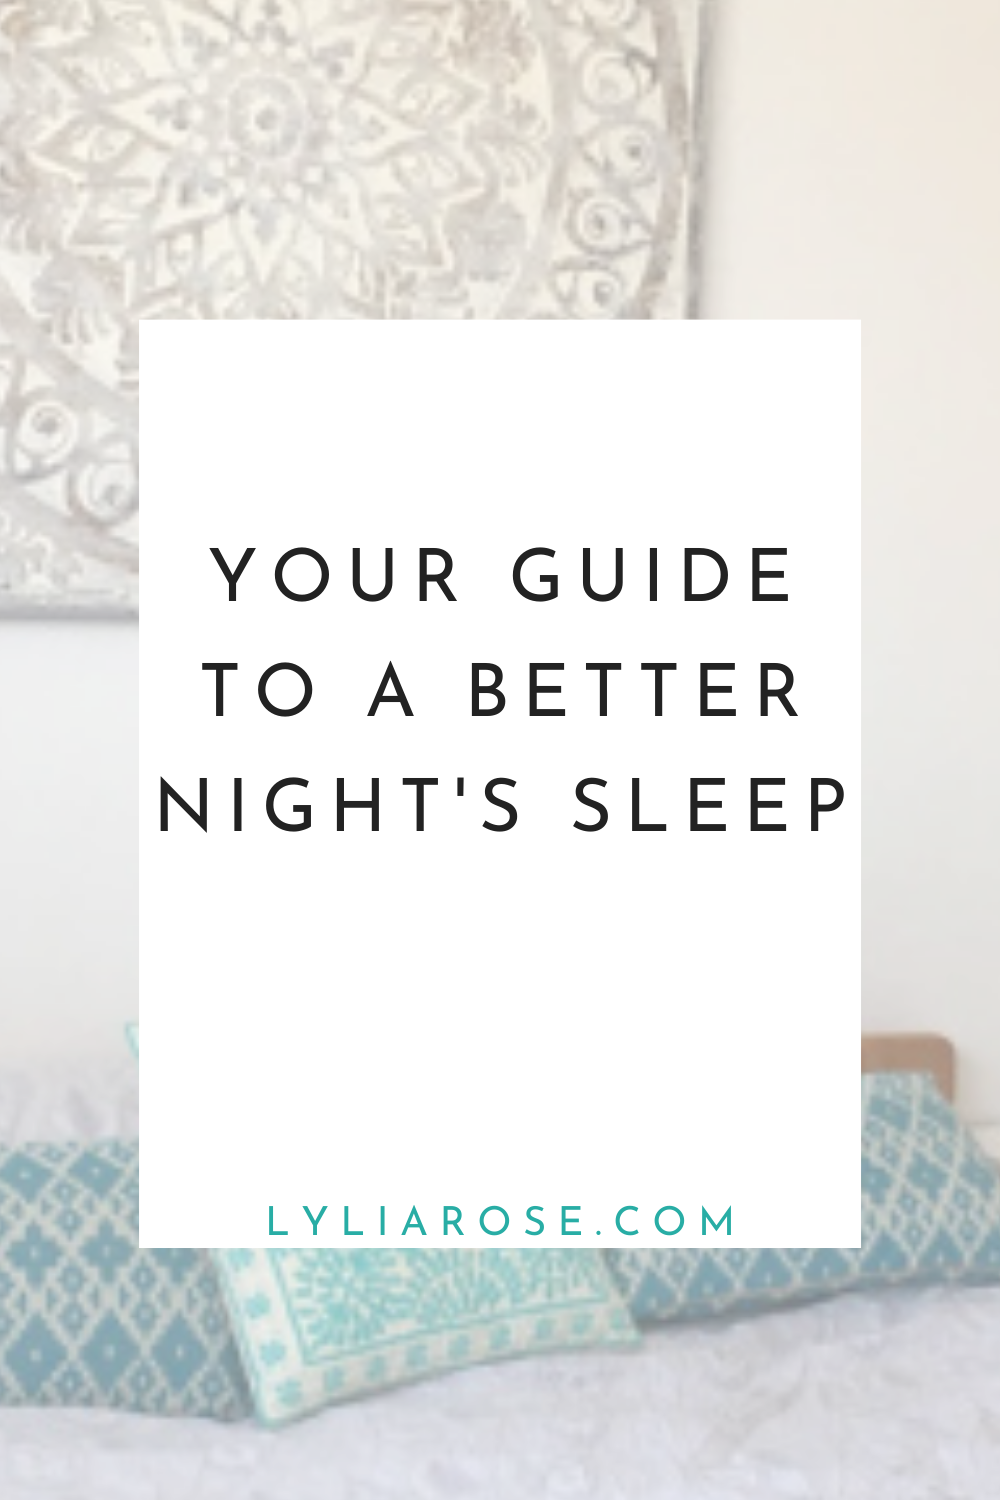 Your guide to a better nights sleep